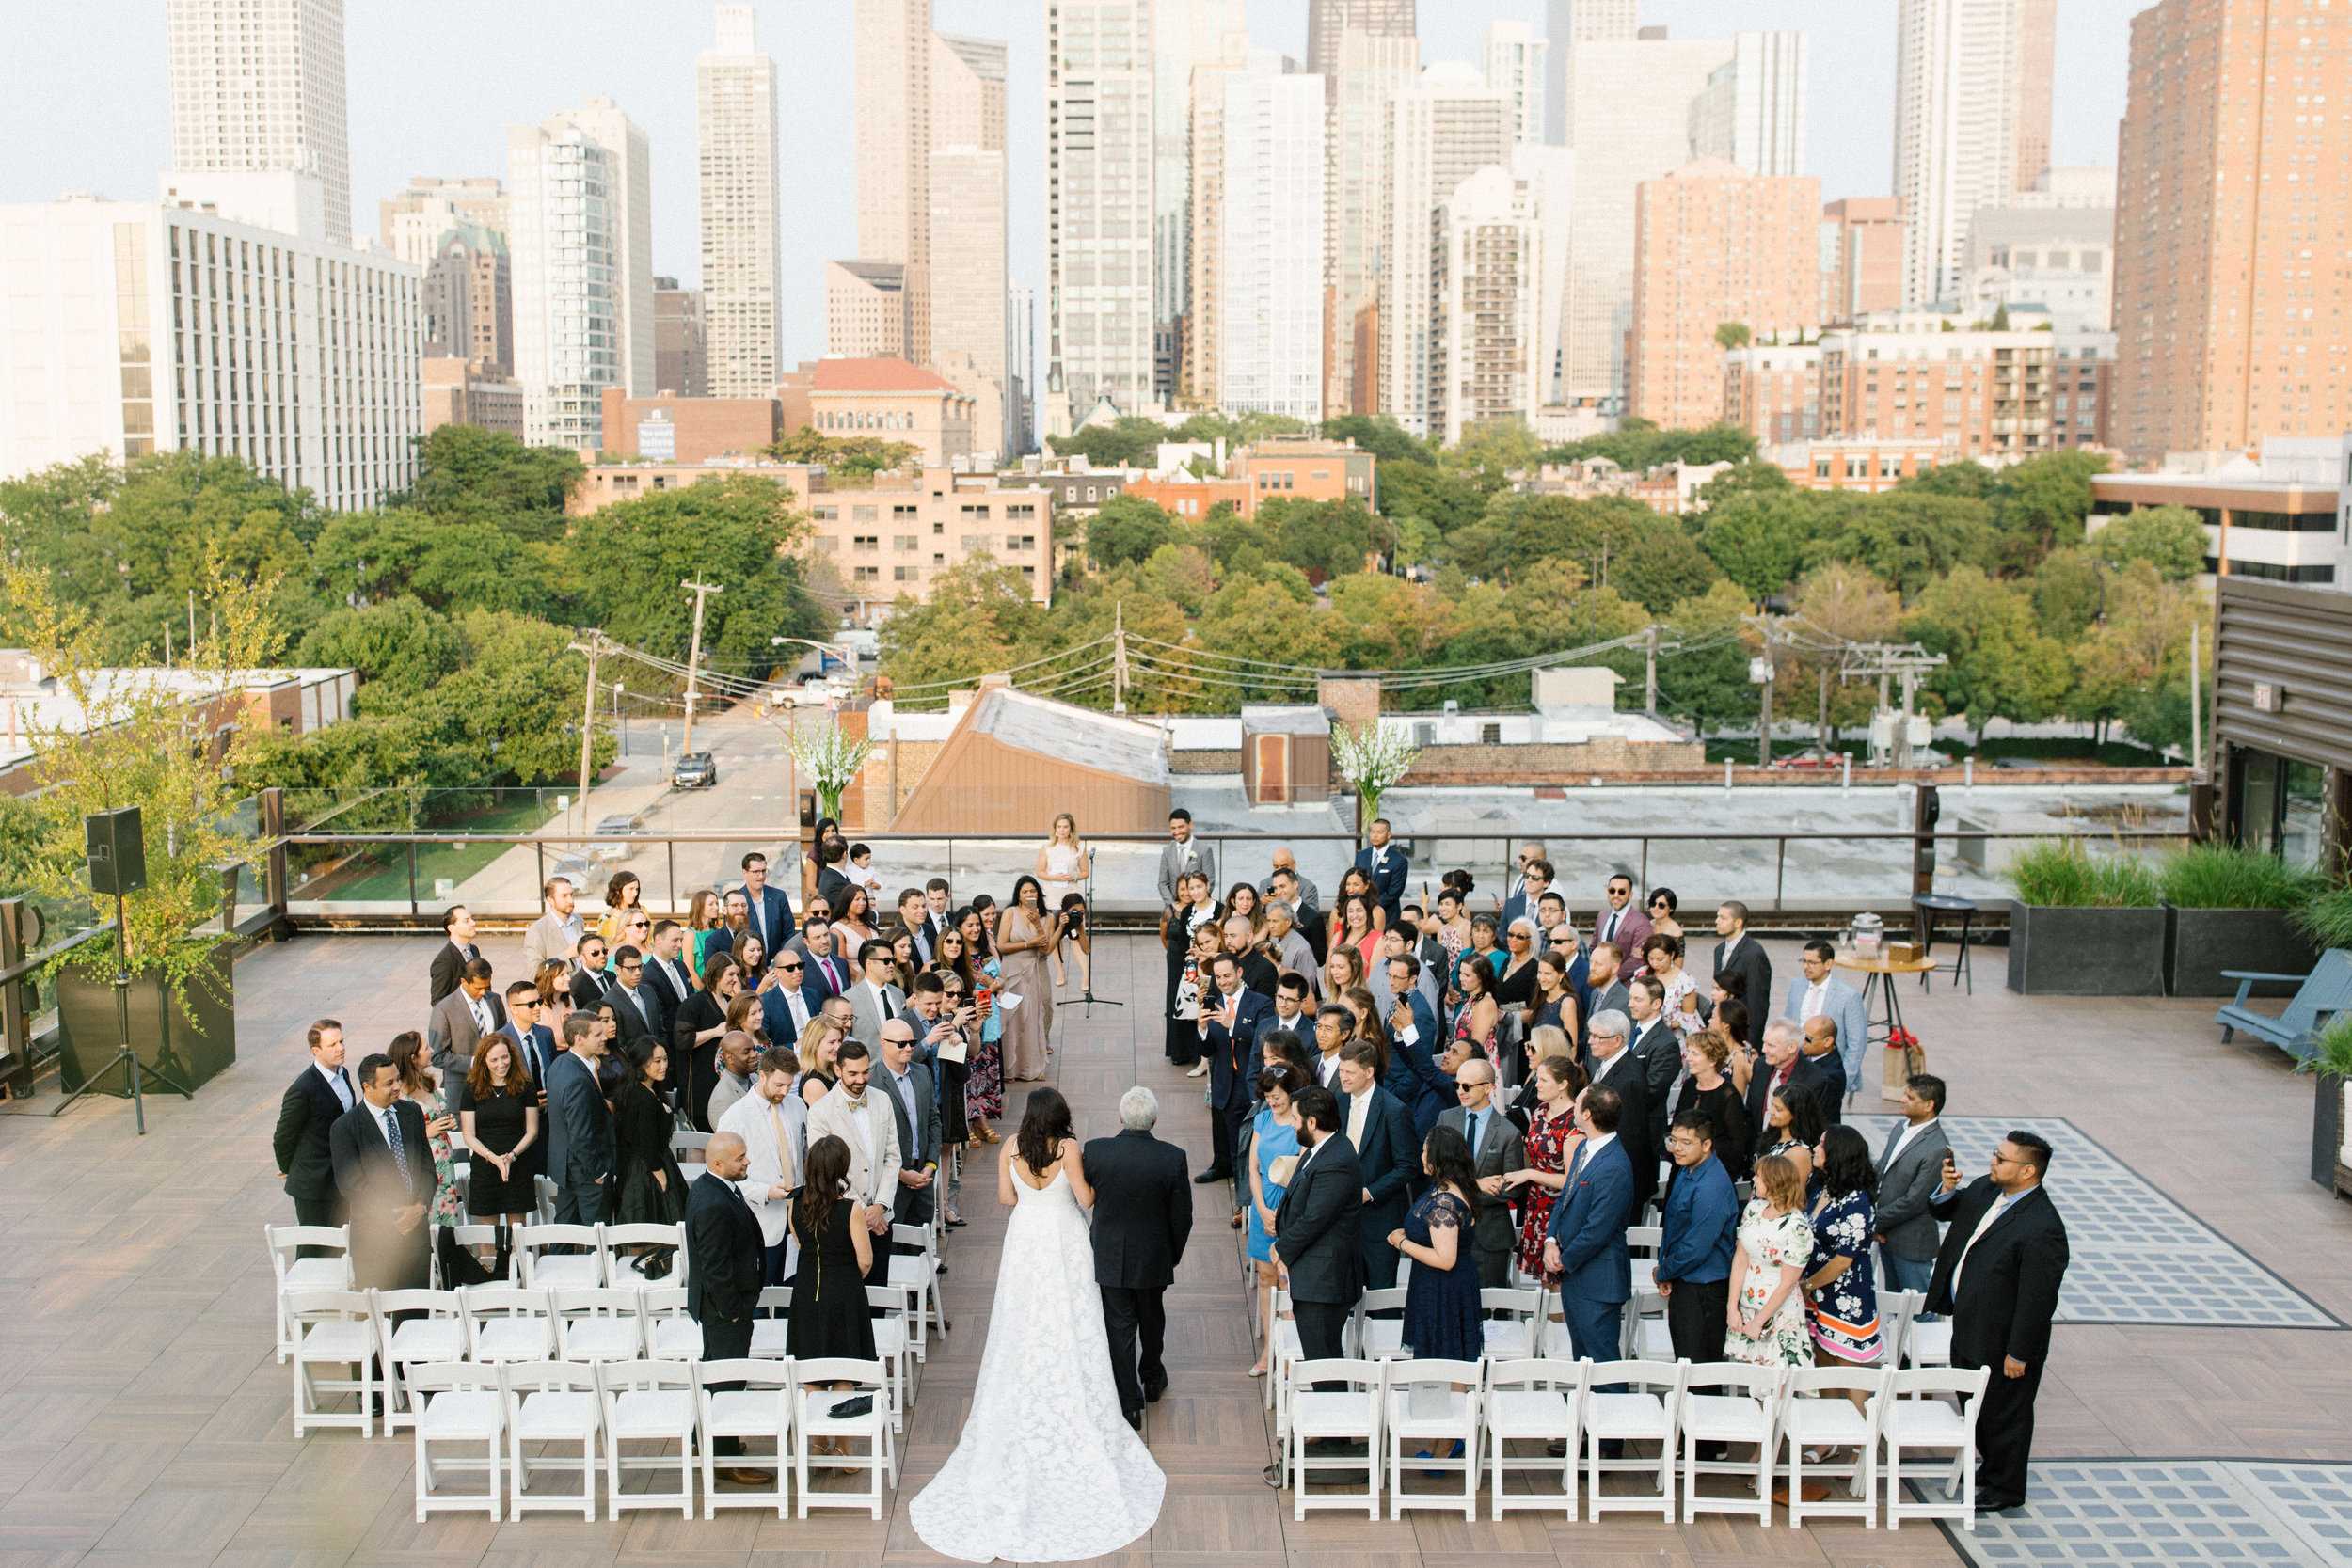 6 Chicago wedding photographers who caught our eye -